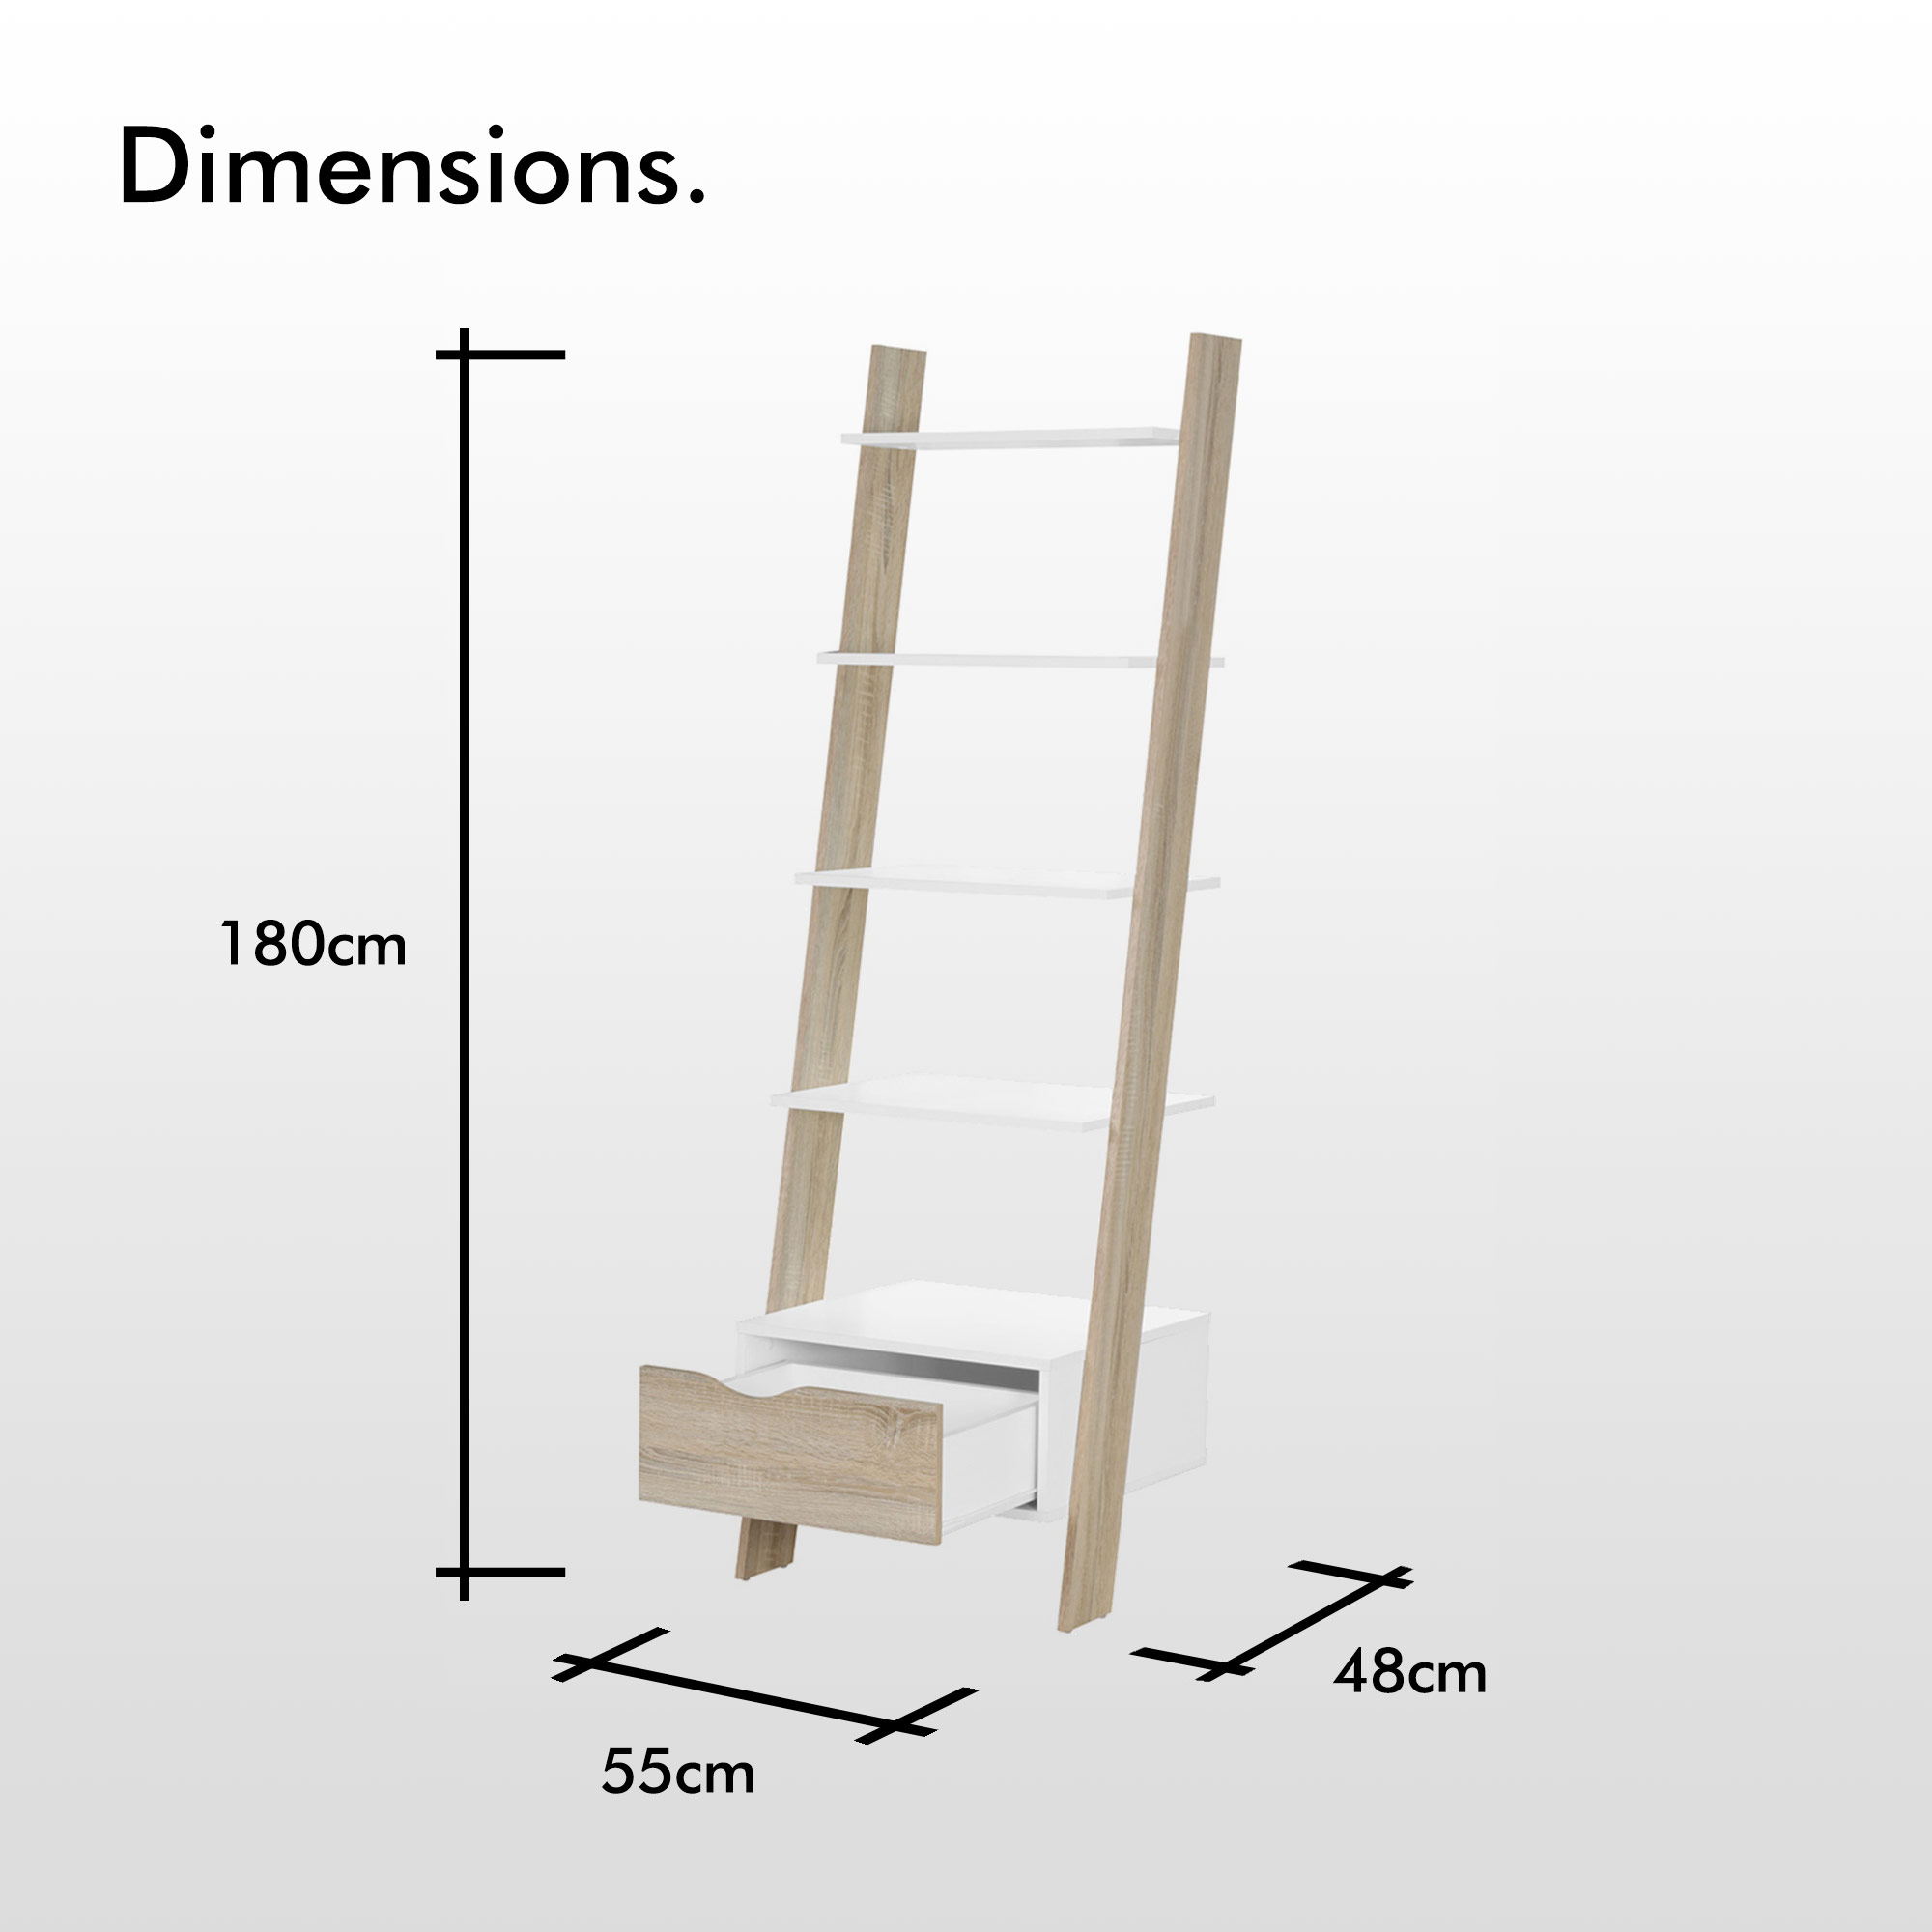 separation shoes a8542 7b4d3 Details about VonHaus Ladder Bookcase Scandinavian Nordic White and Light  Oak Effect Bookshelf